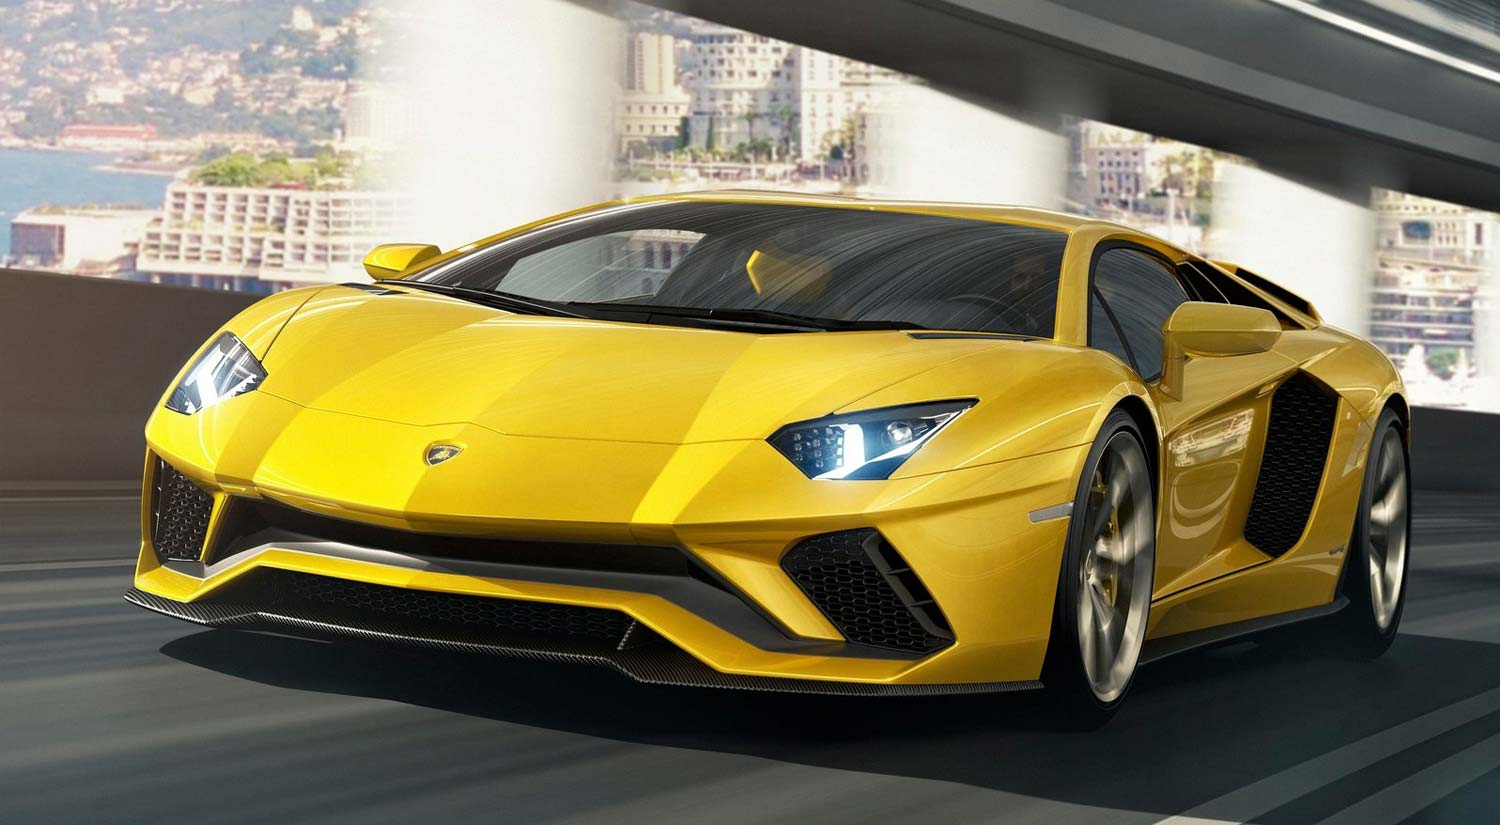 lamborghini aventador five stars rentals monte carlo location self drive. Black Bedroom Furniture Sets. Home Design Ideas